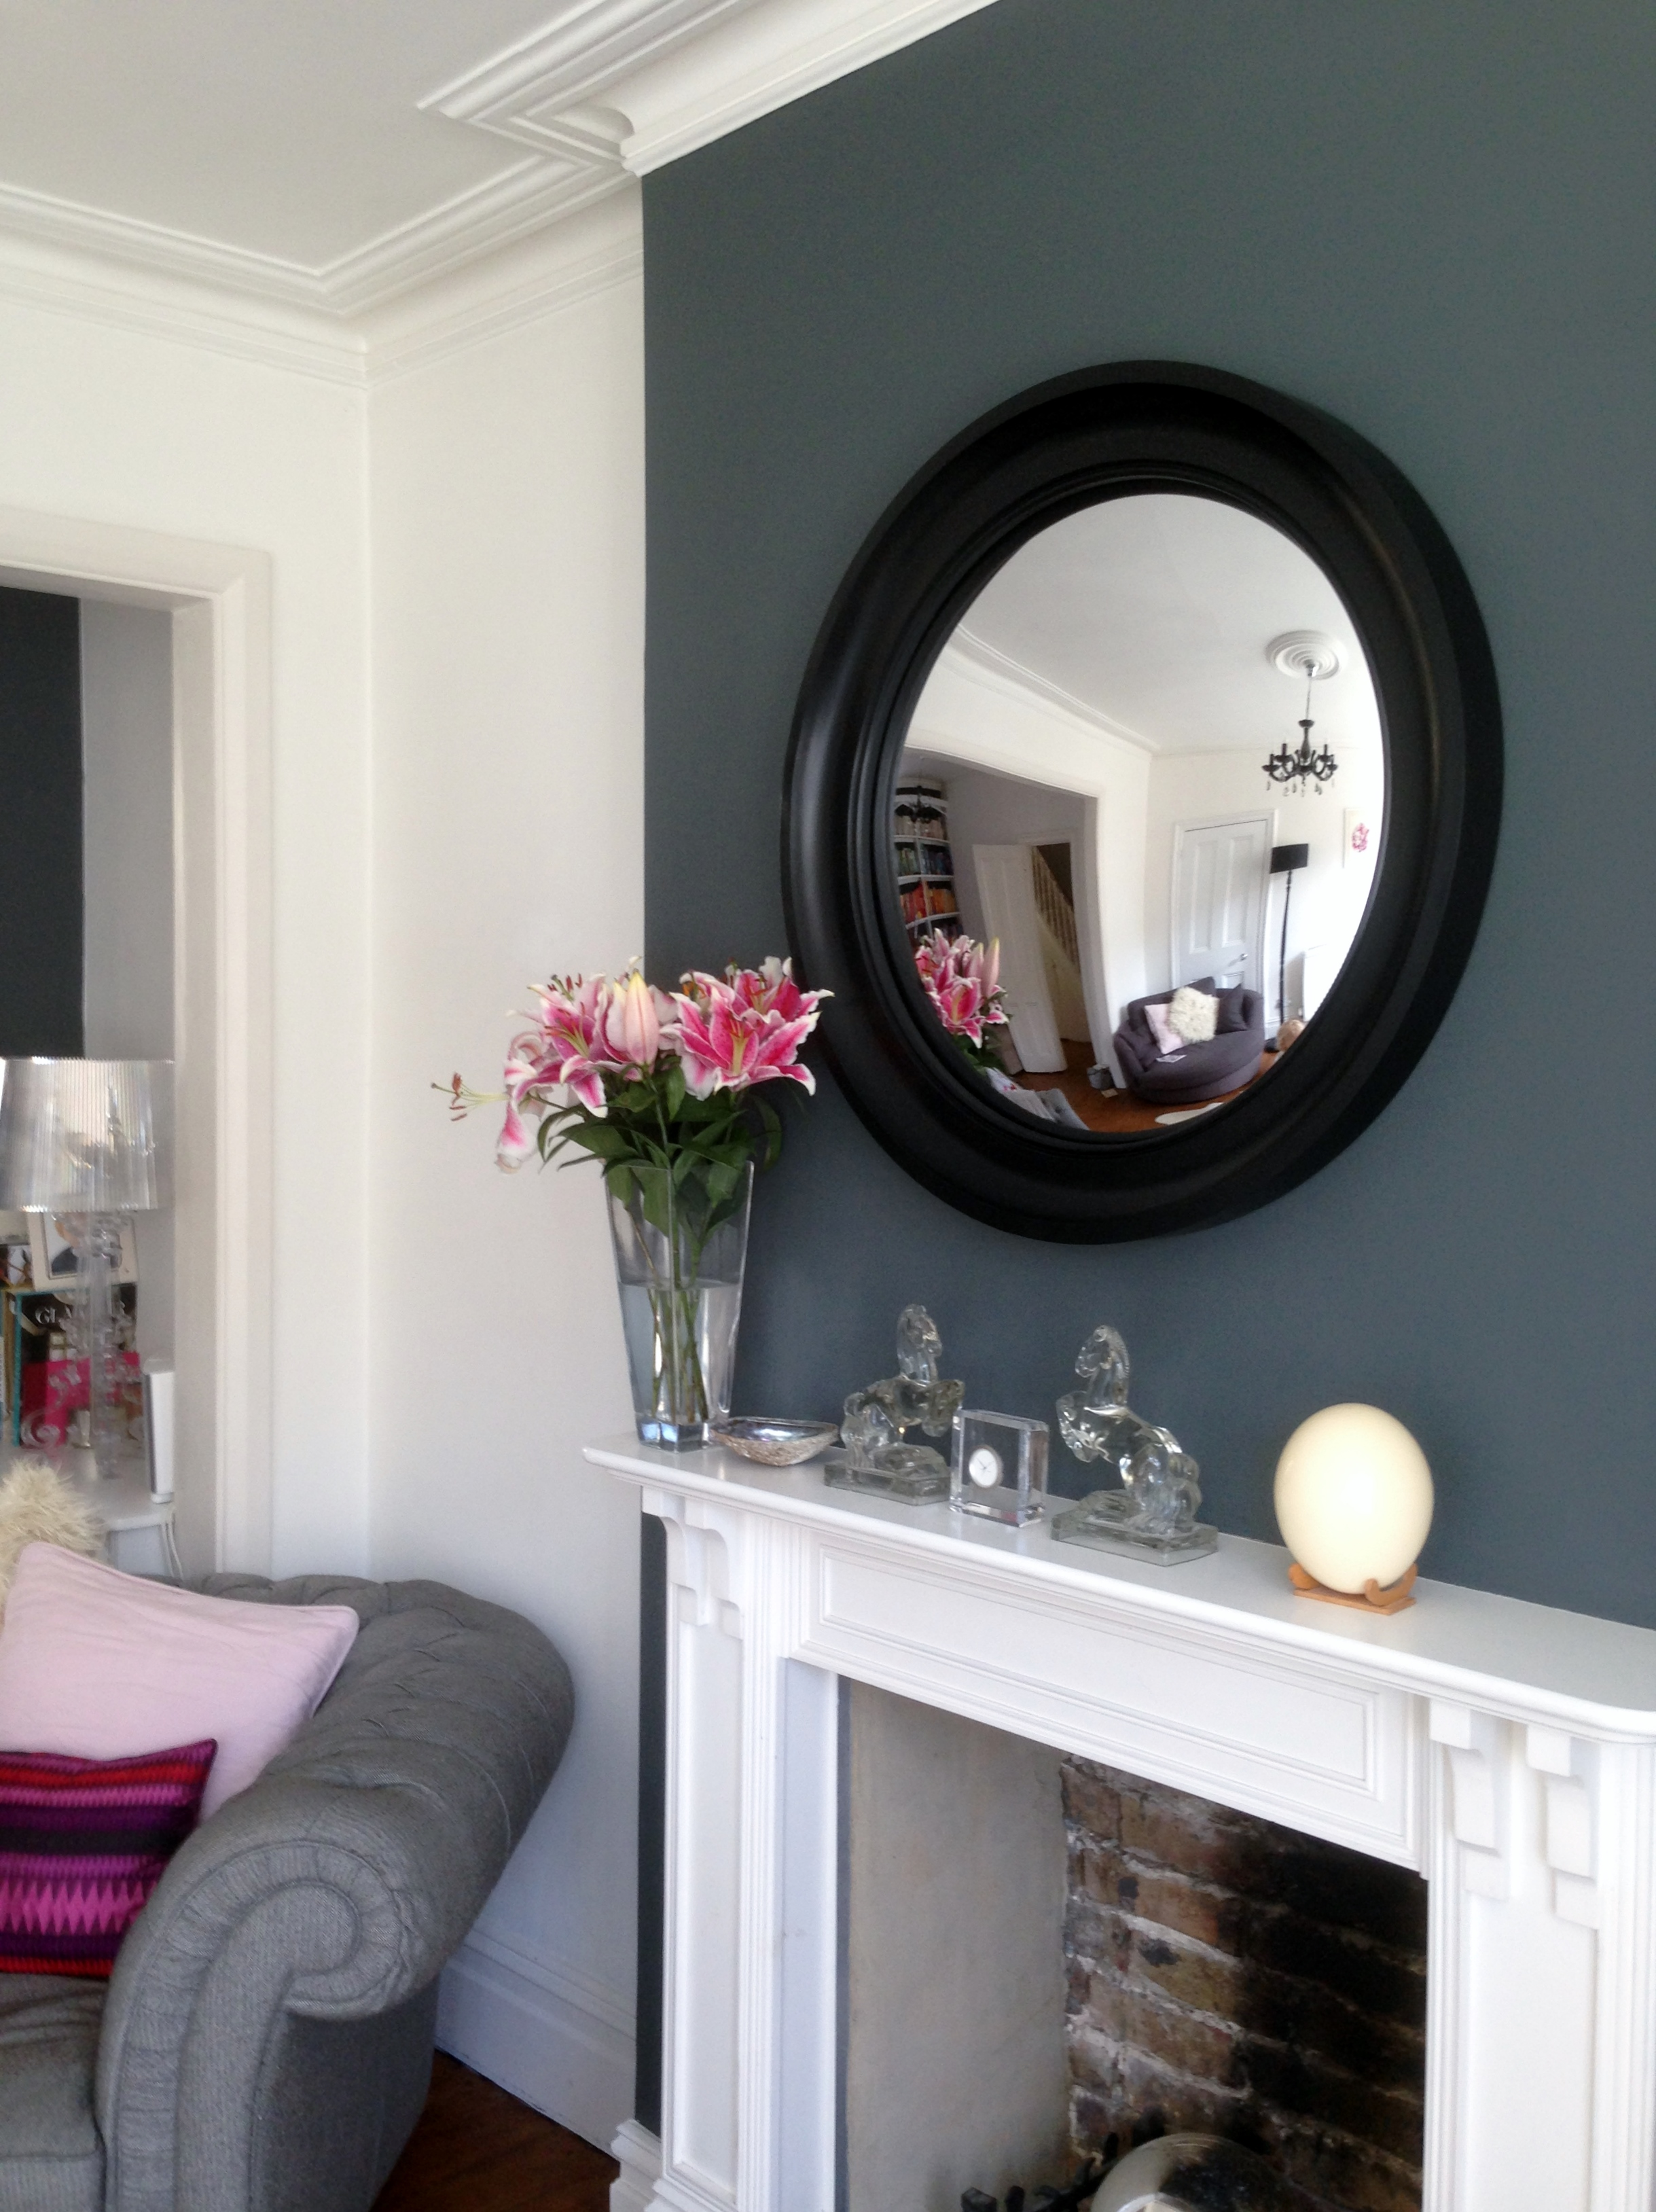 69 decorative mirrors for above fireplace please help with